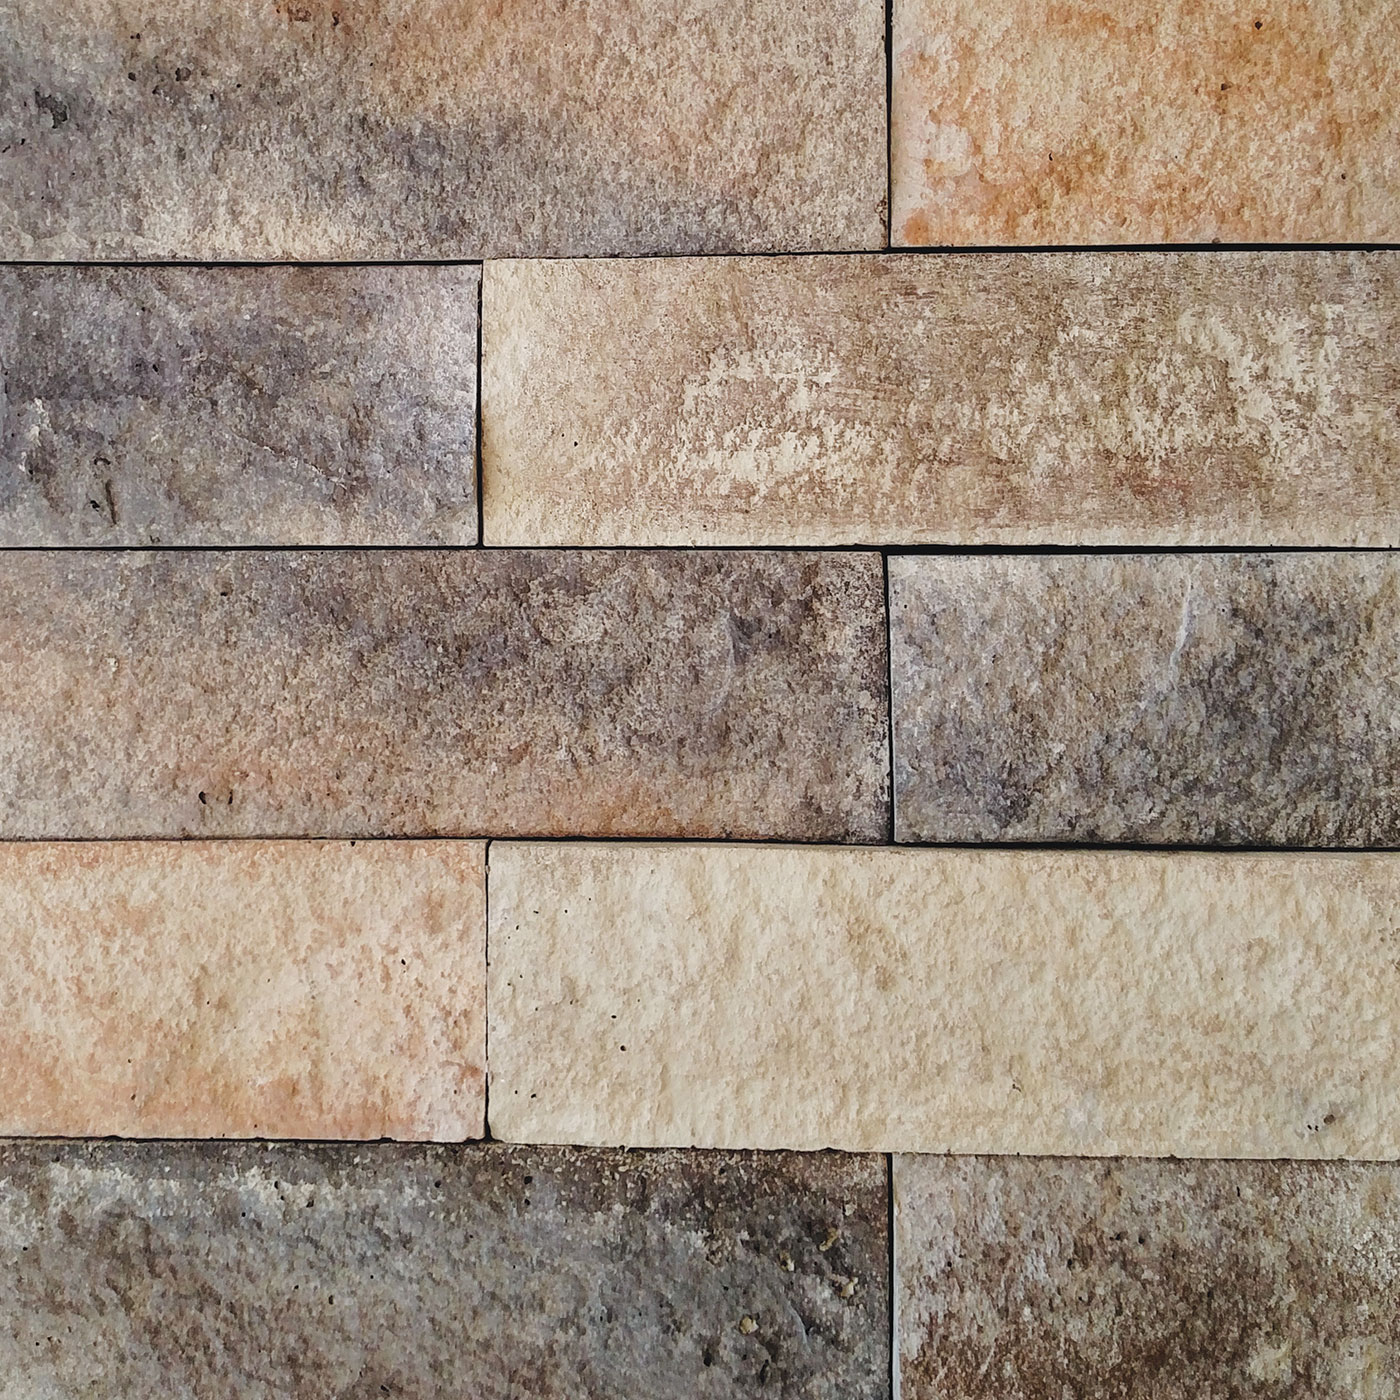 Driftwood Strip Ledge Stone Veneer from Environmental StoneWorks